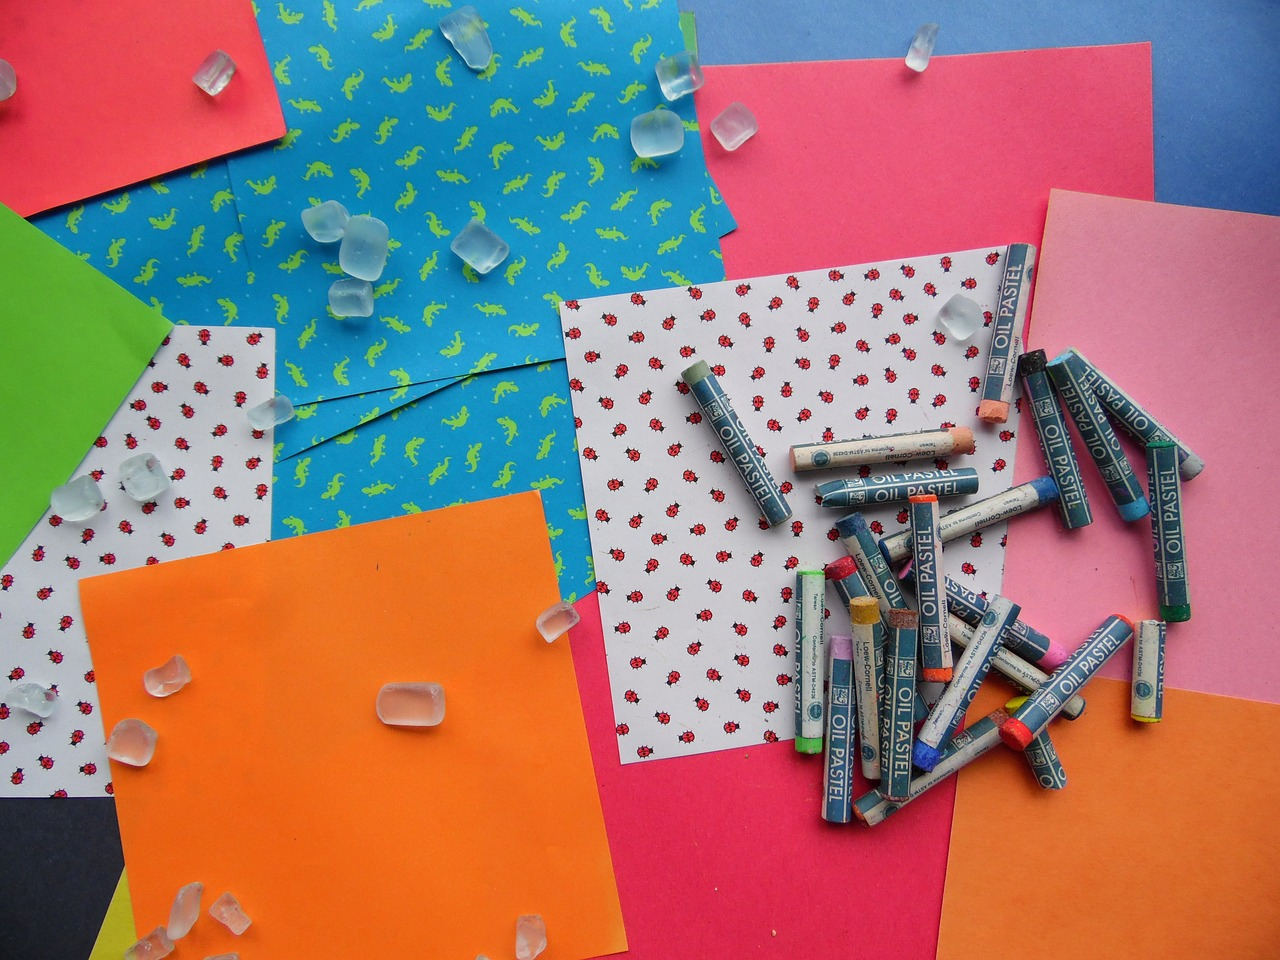 Multi-colored craft paper scattered with oil pastels and craft pieces sprinkled on top.